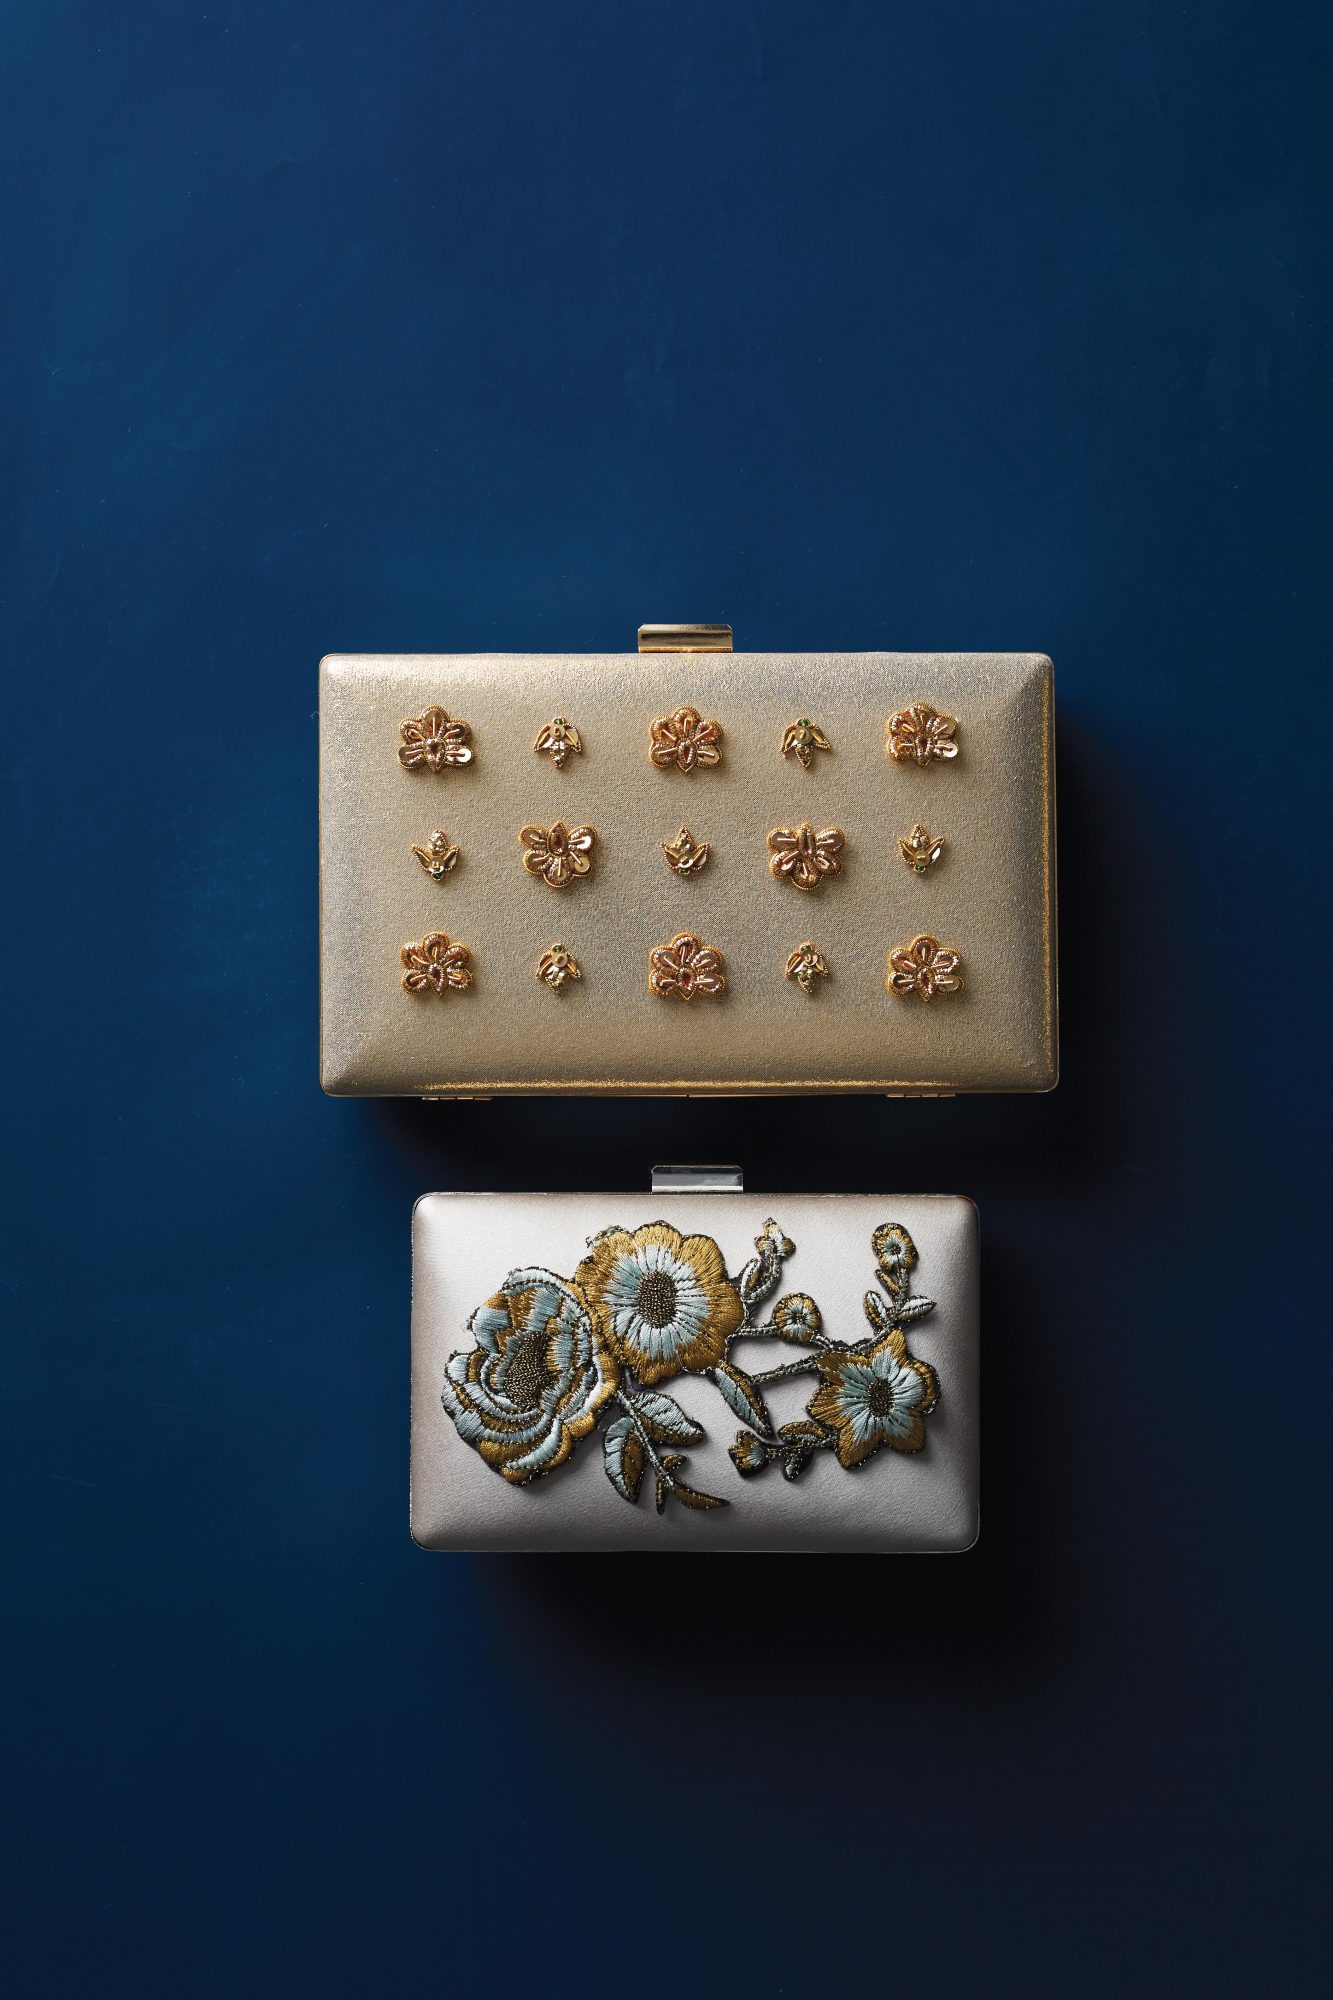 Grab a uniform batch of simple clutches or mix and match a few (we chose a minaudières and pillbox clutches). Then, spice up the bland design with custom appliqués of your choice. If you're extra proud of your handiwork, have your 'maids hold them on the big day!